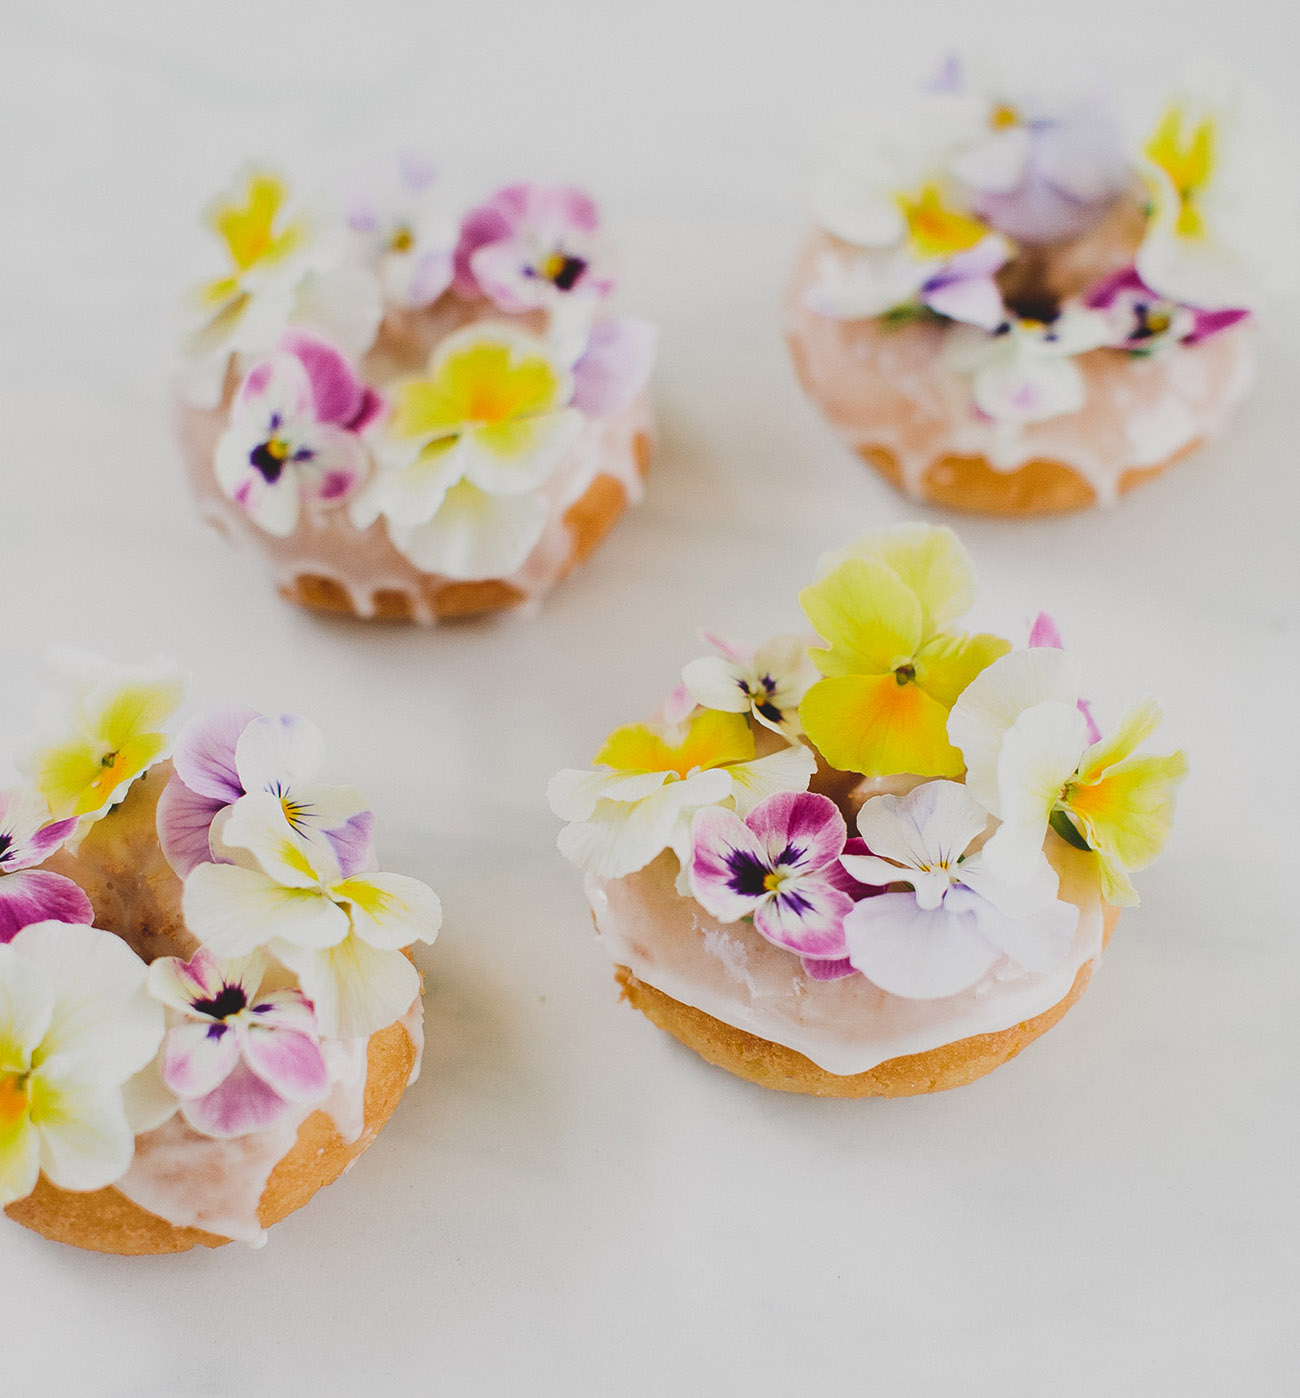 donuts with edible flowers